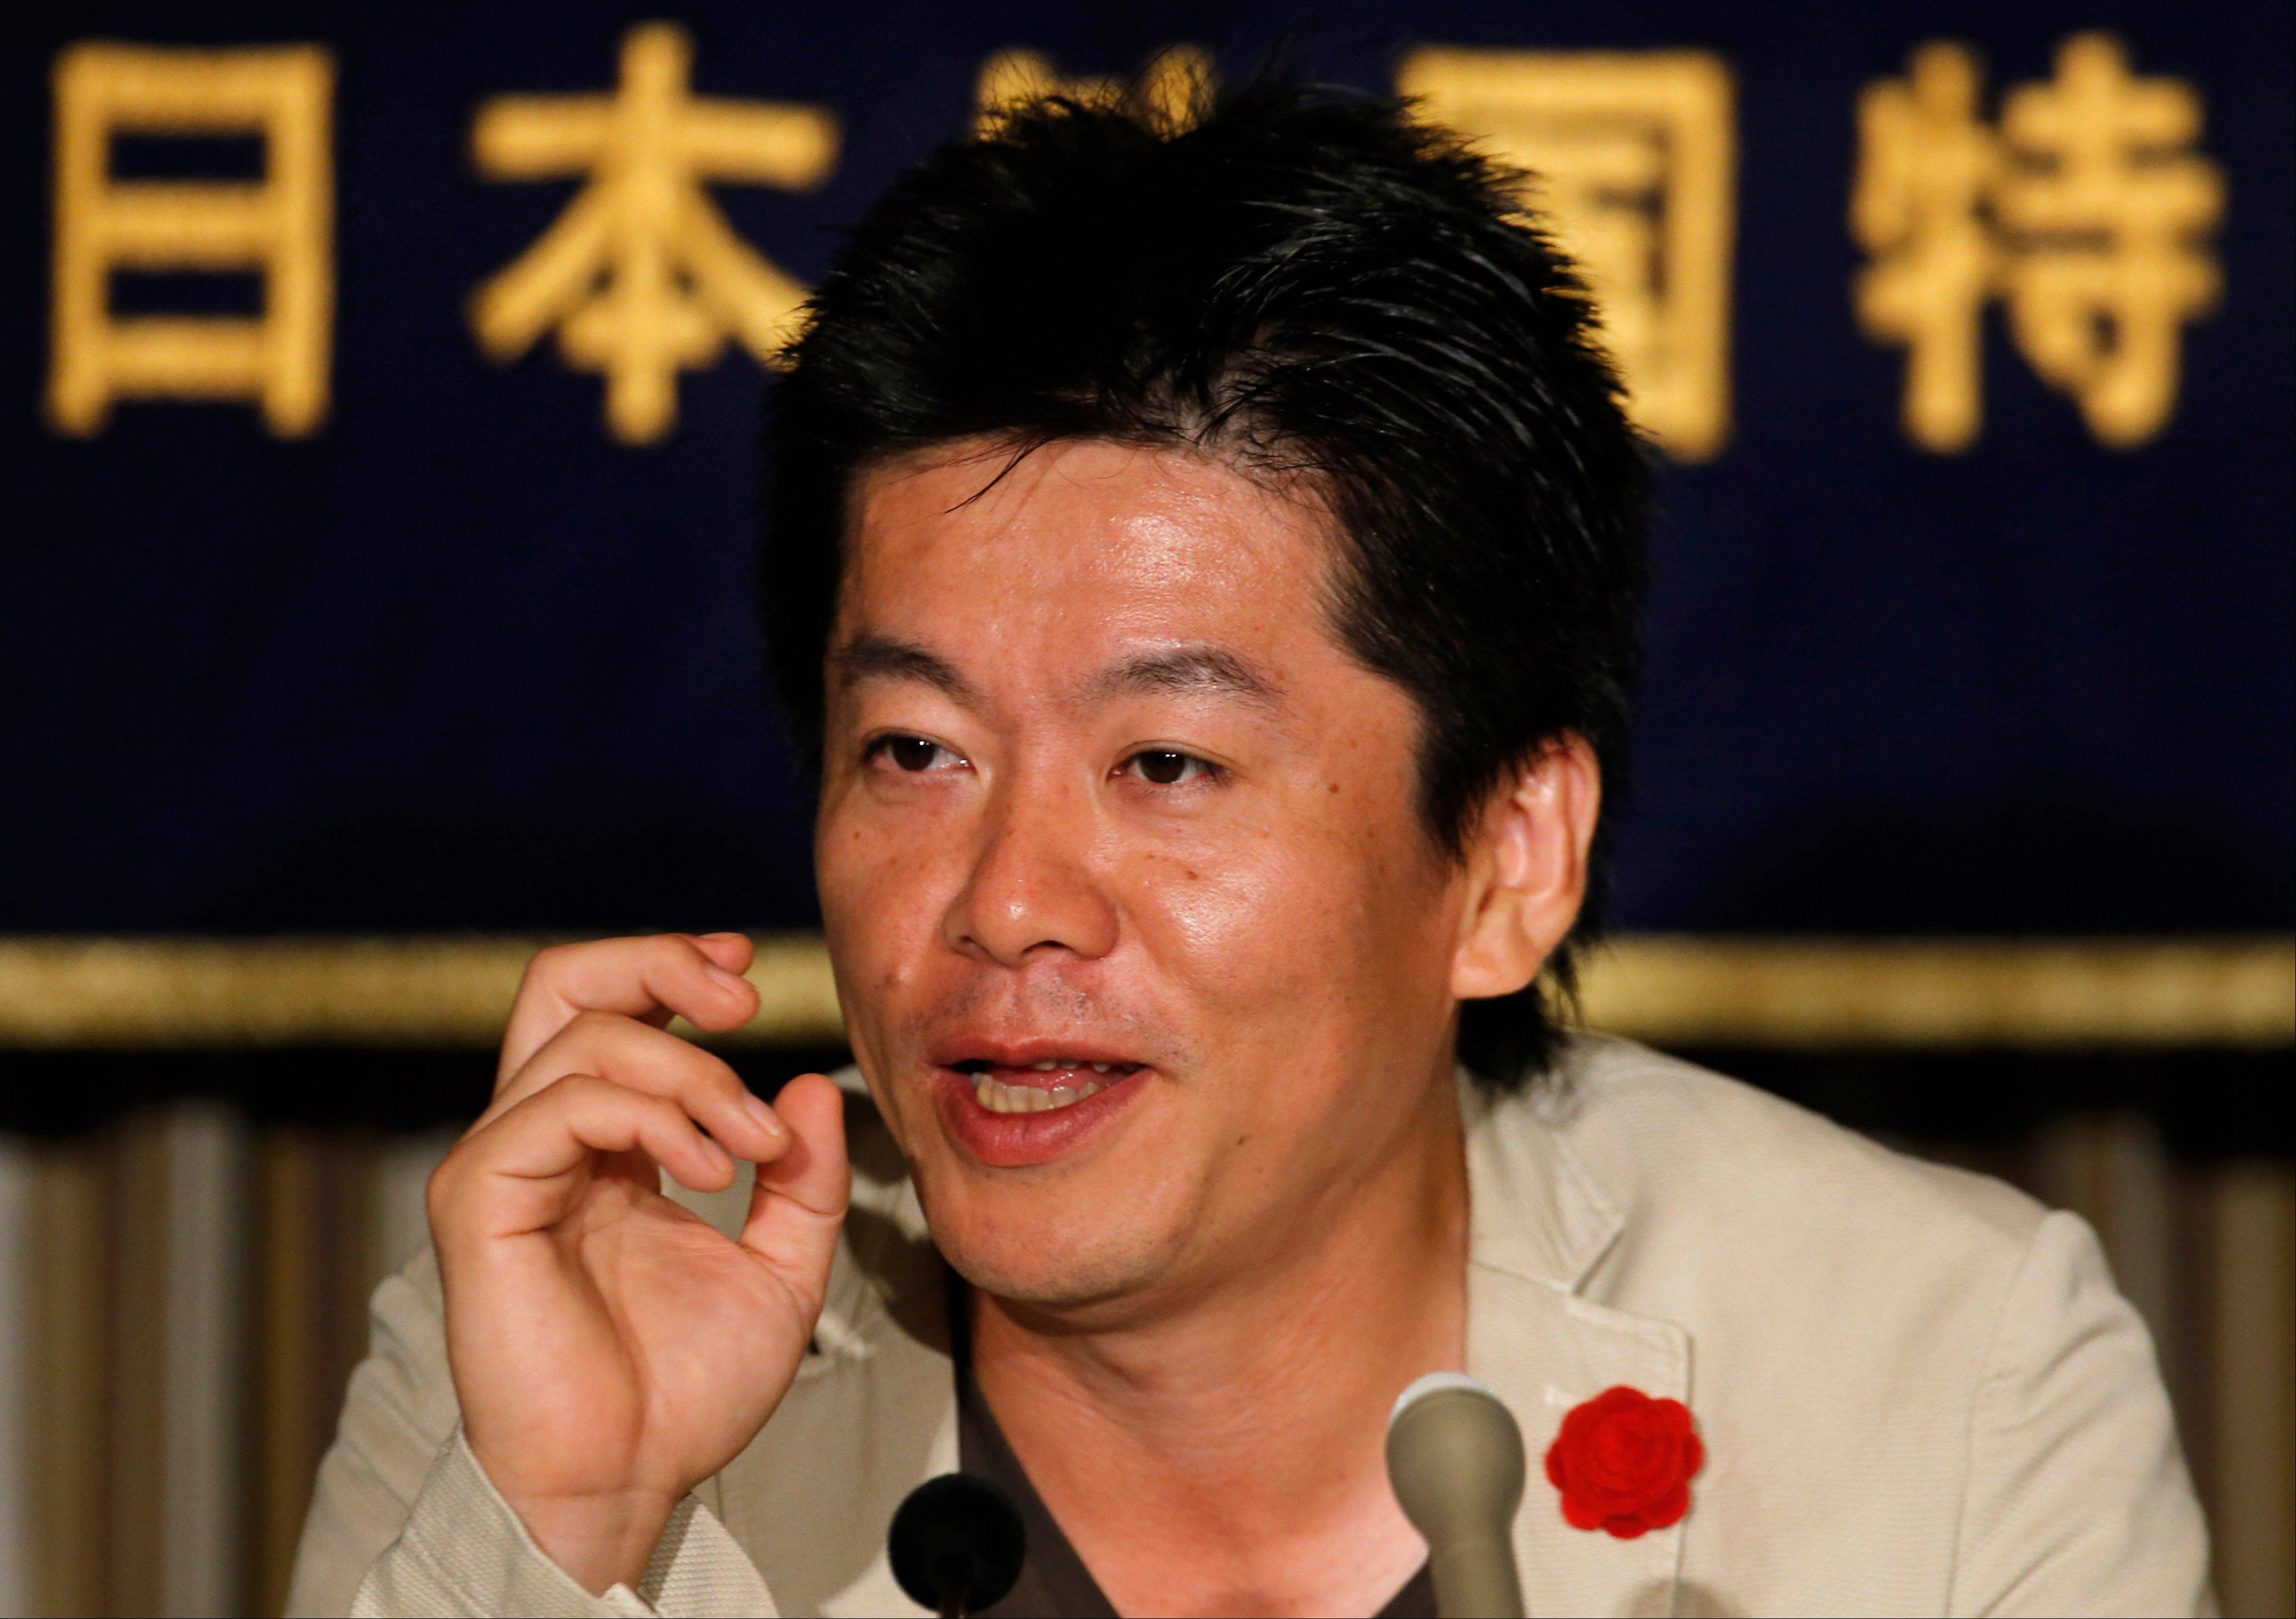 Takafumi Horie, the Japanese dot.com celebrity imprisoned for nearly two years on securities fraud charges, is cooking up dozens of ventures and is demanding the nation reduce regulations to give more opportunities to young entrepreneurs.